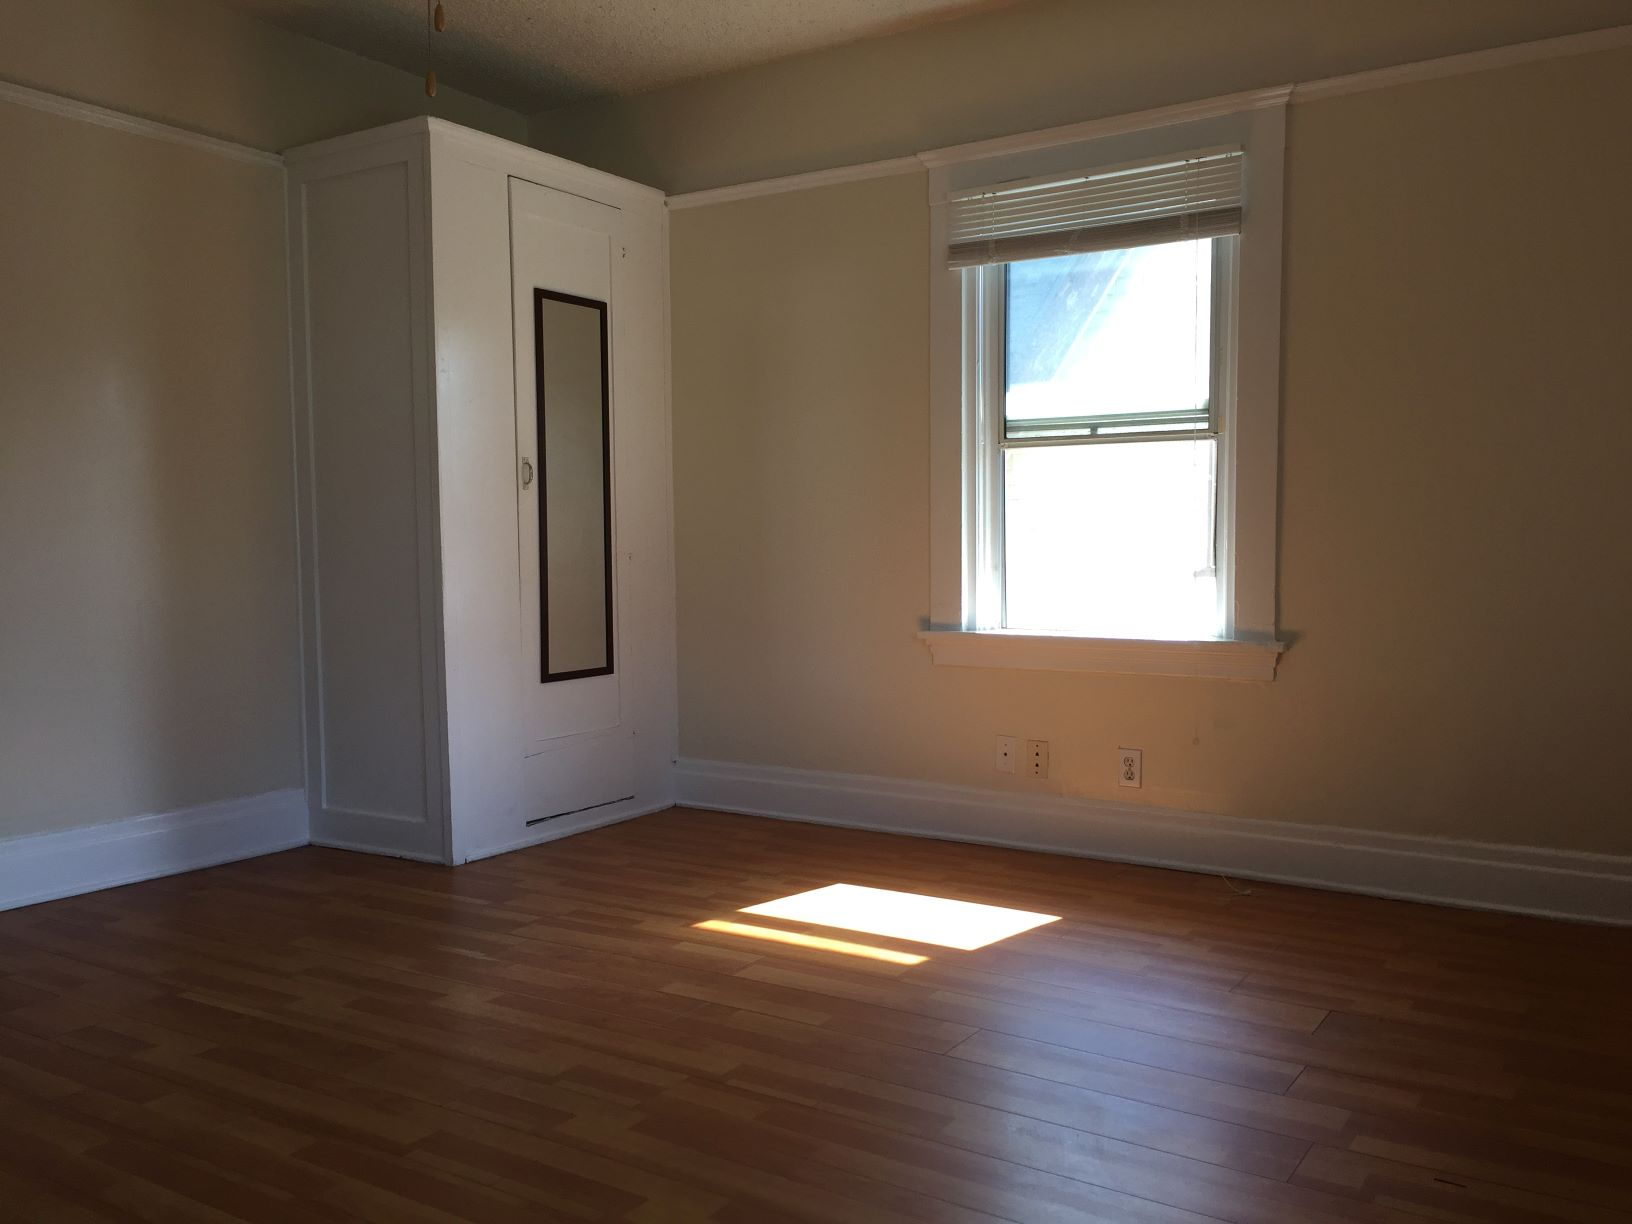 1176 W. 37th St., Los Angeles, California, ,1 BathroomBathrooms,Apartment,For Rent,W. 37th St.,1034